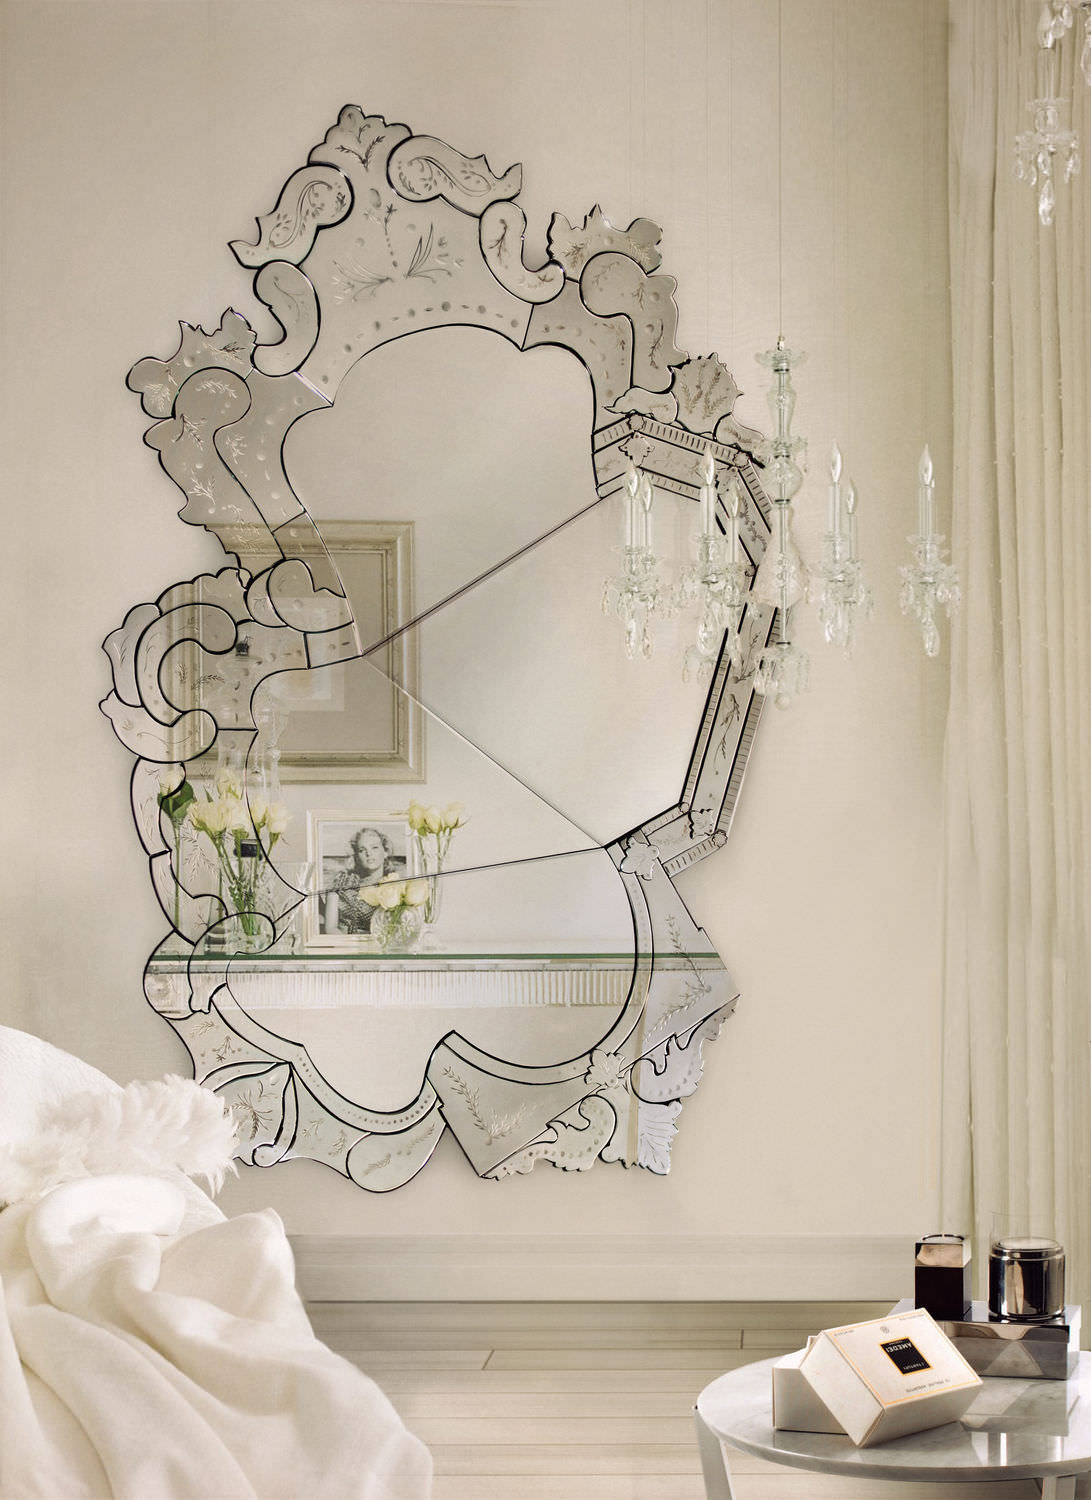 Stunning Wall mirrors Décor Ideas for Your Home7 must see wall mirrors 25 Must See Wall Mirrors to Inspire your Home Decor Stunning Wall mirrors D  cor Ideas for Your Home7